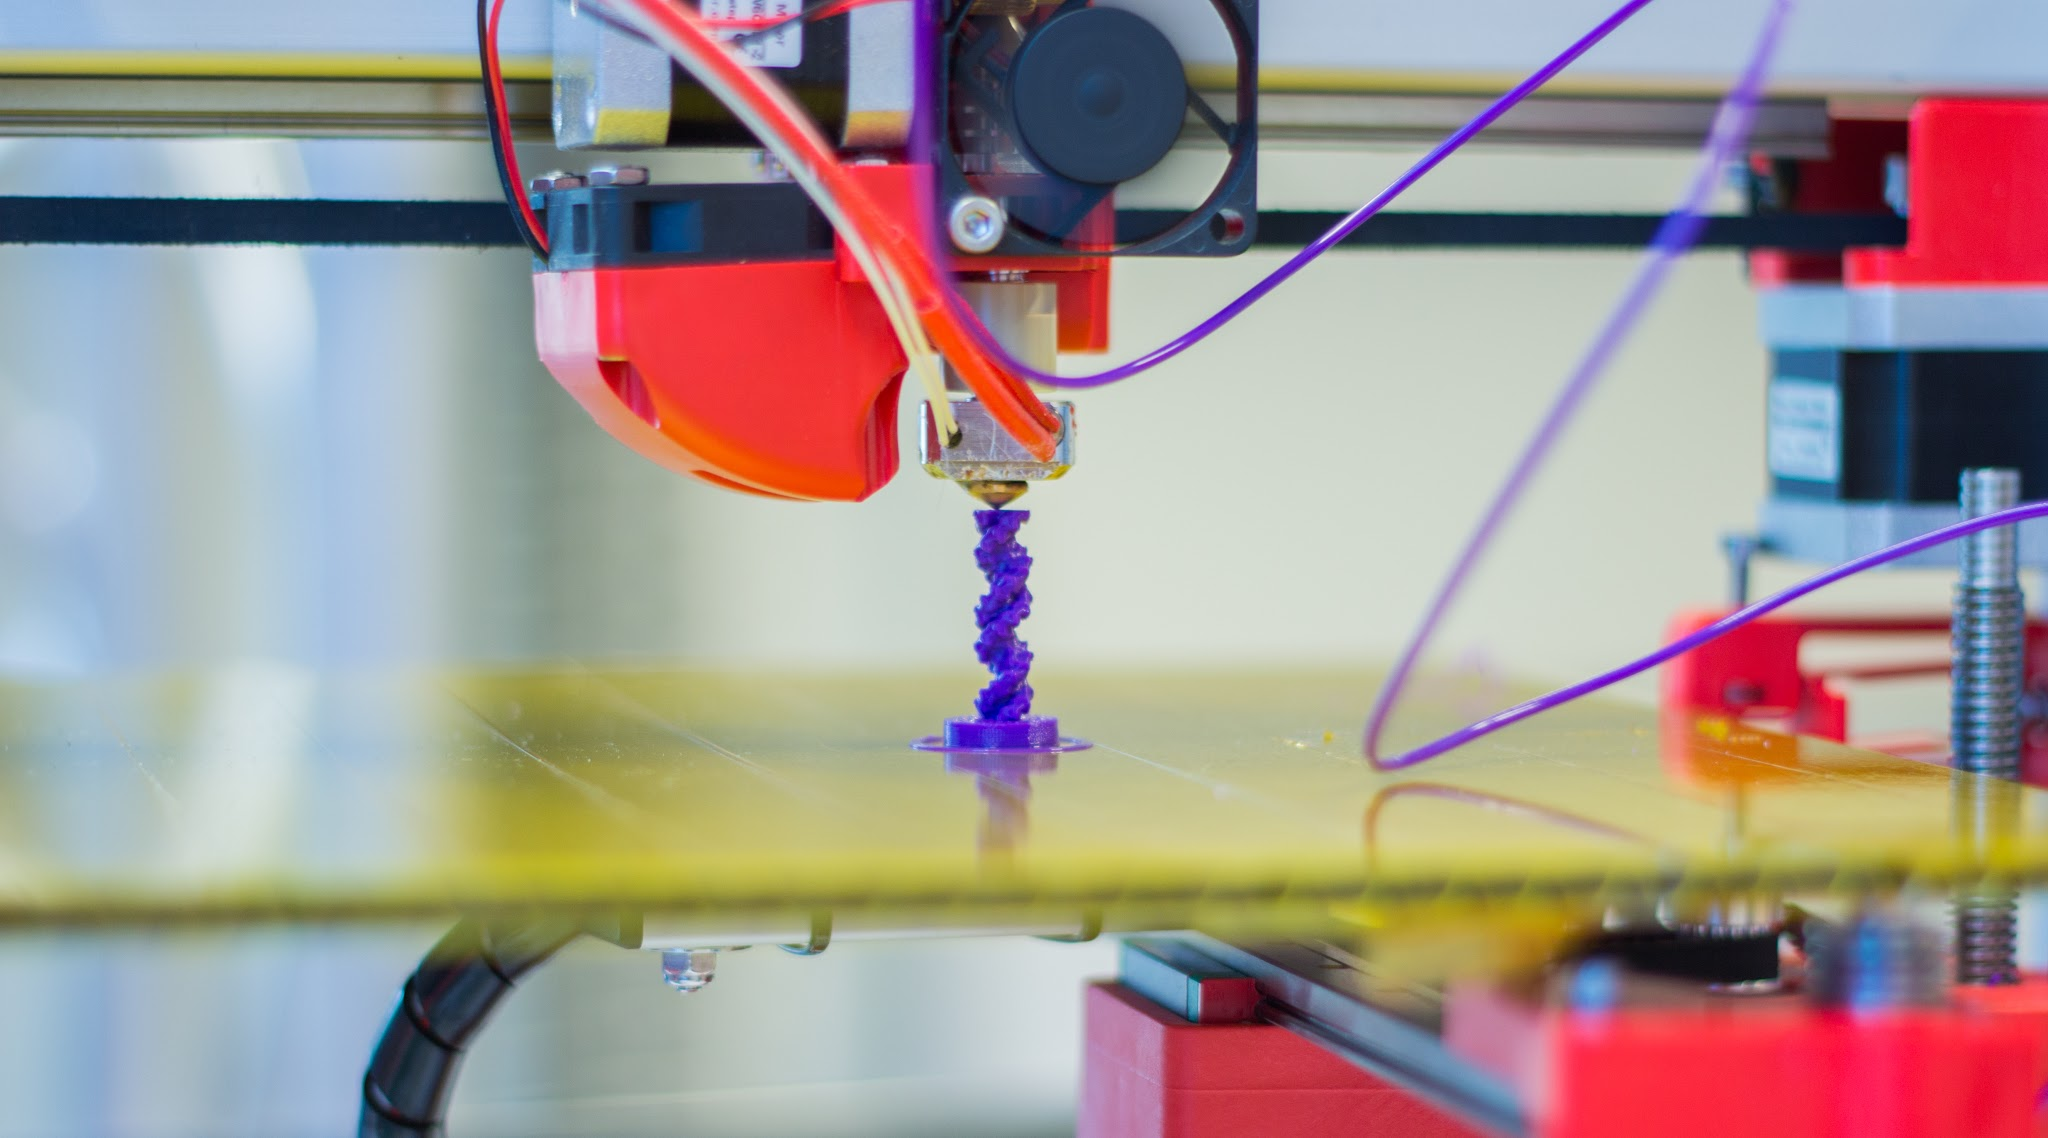 Thailand's New 3D Printer Regulation Hits Importers